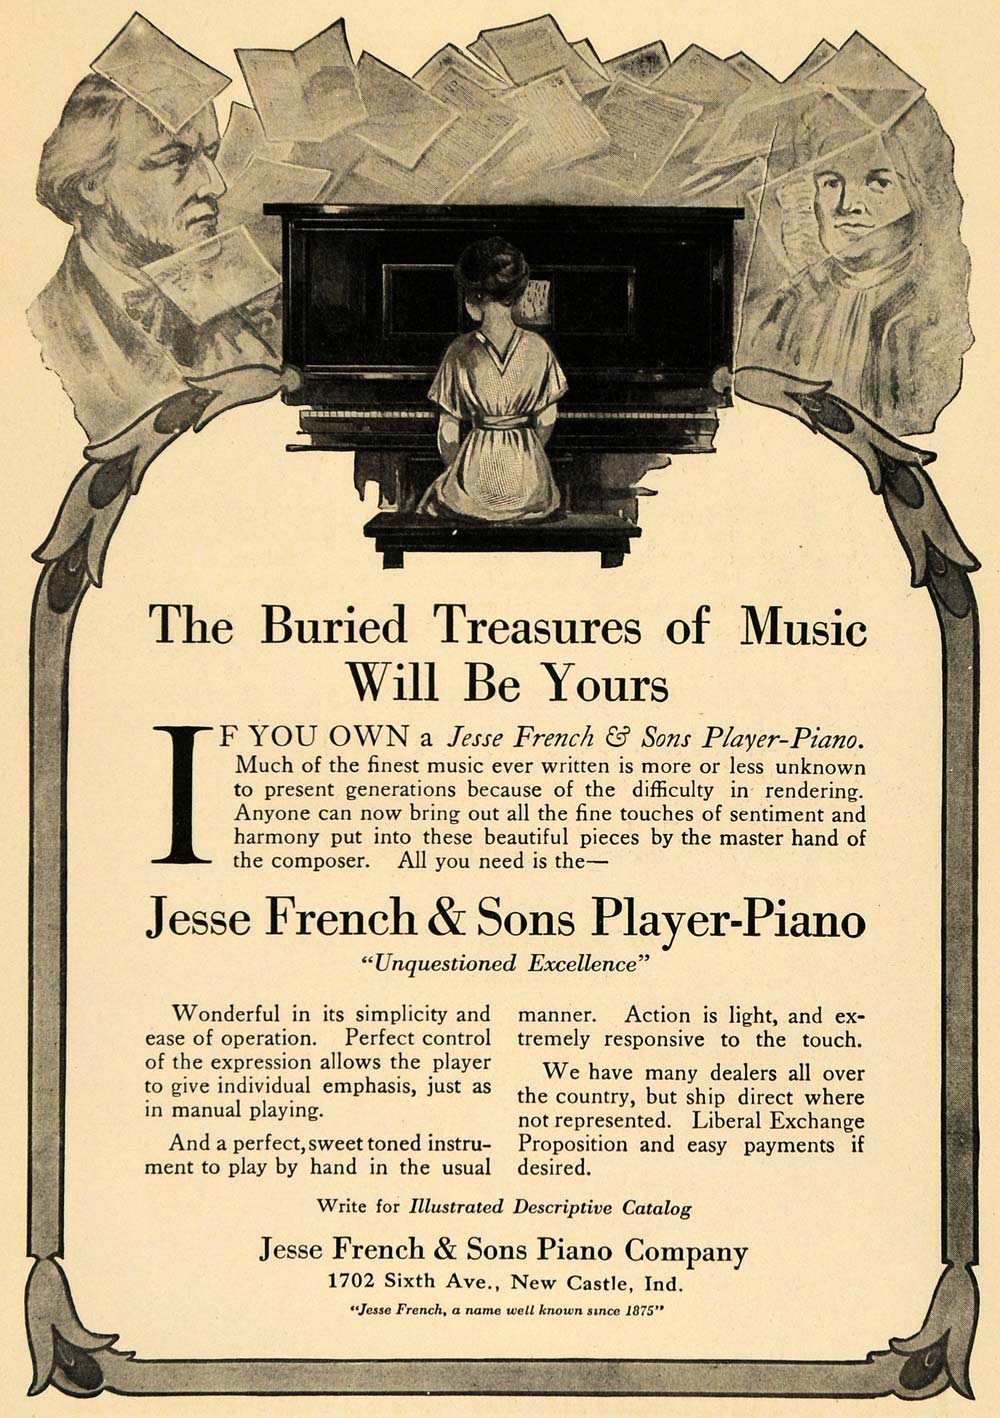 1916 Ad Jesse French Player-Piano Instrument Composers - ORIGINAL ILW1